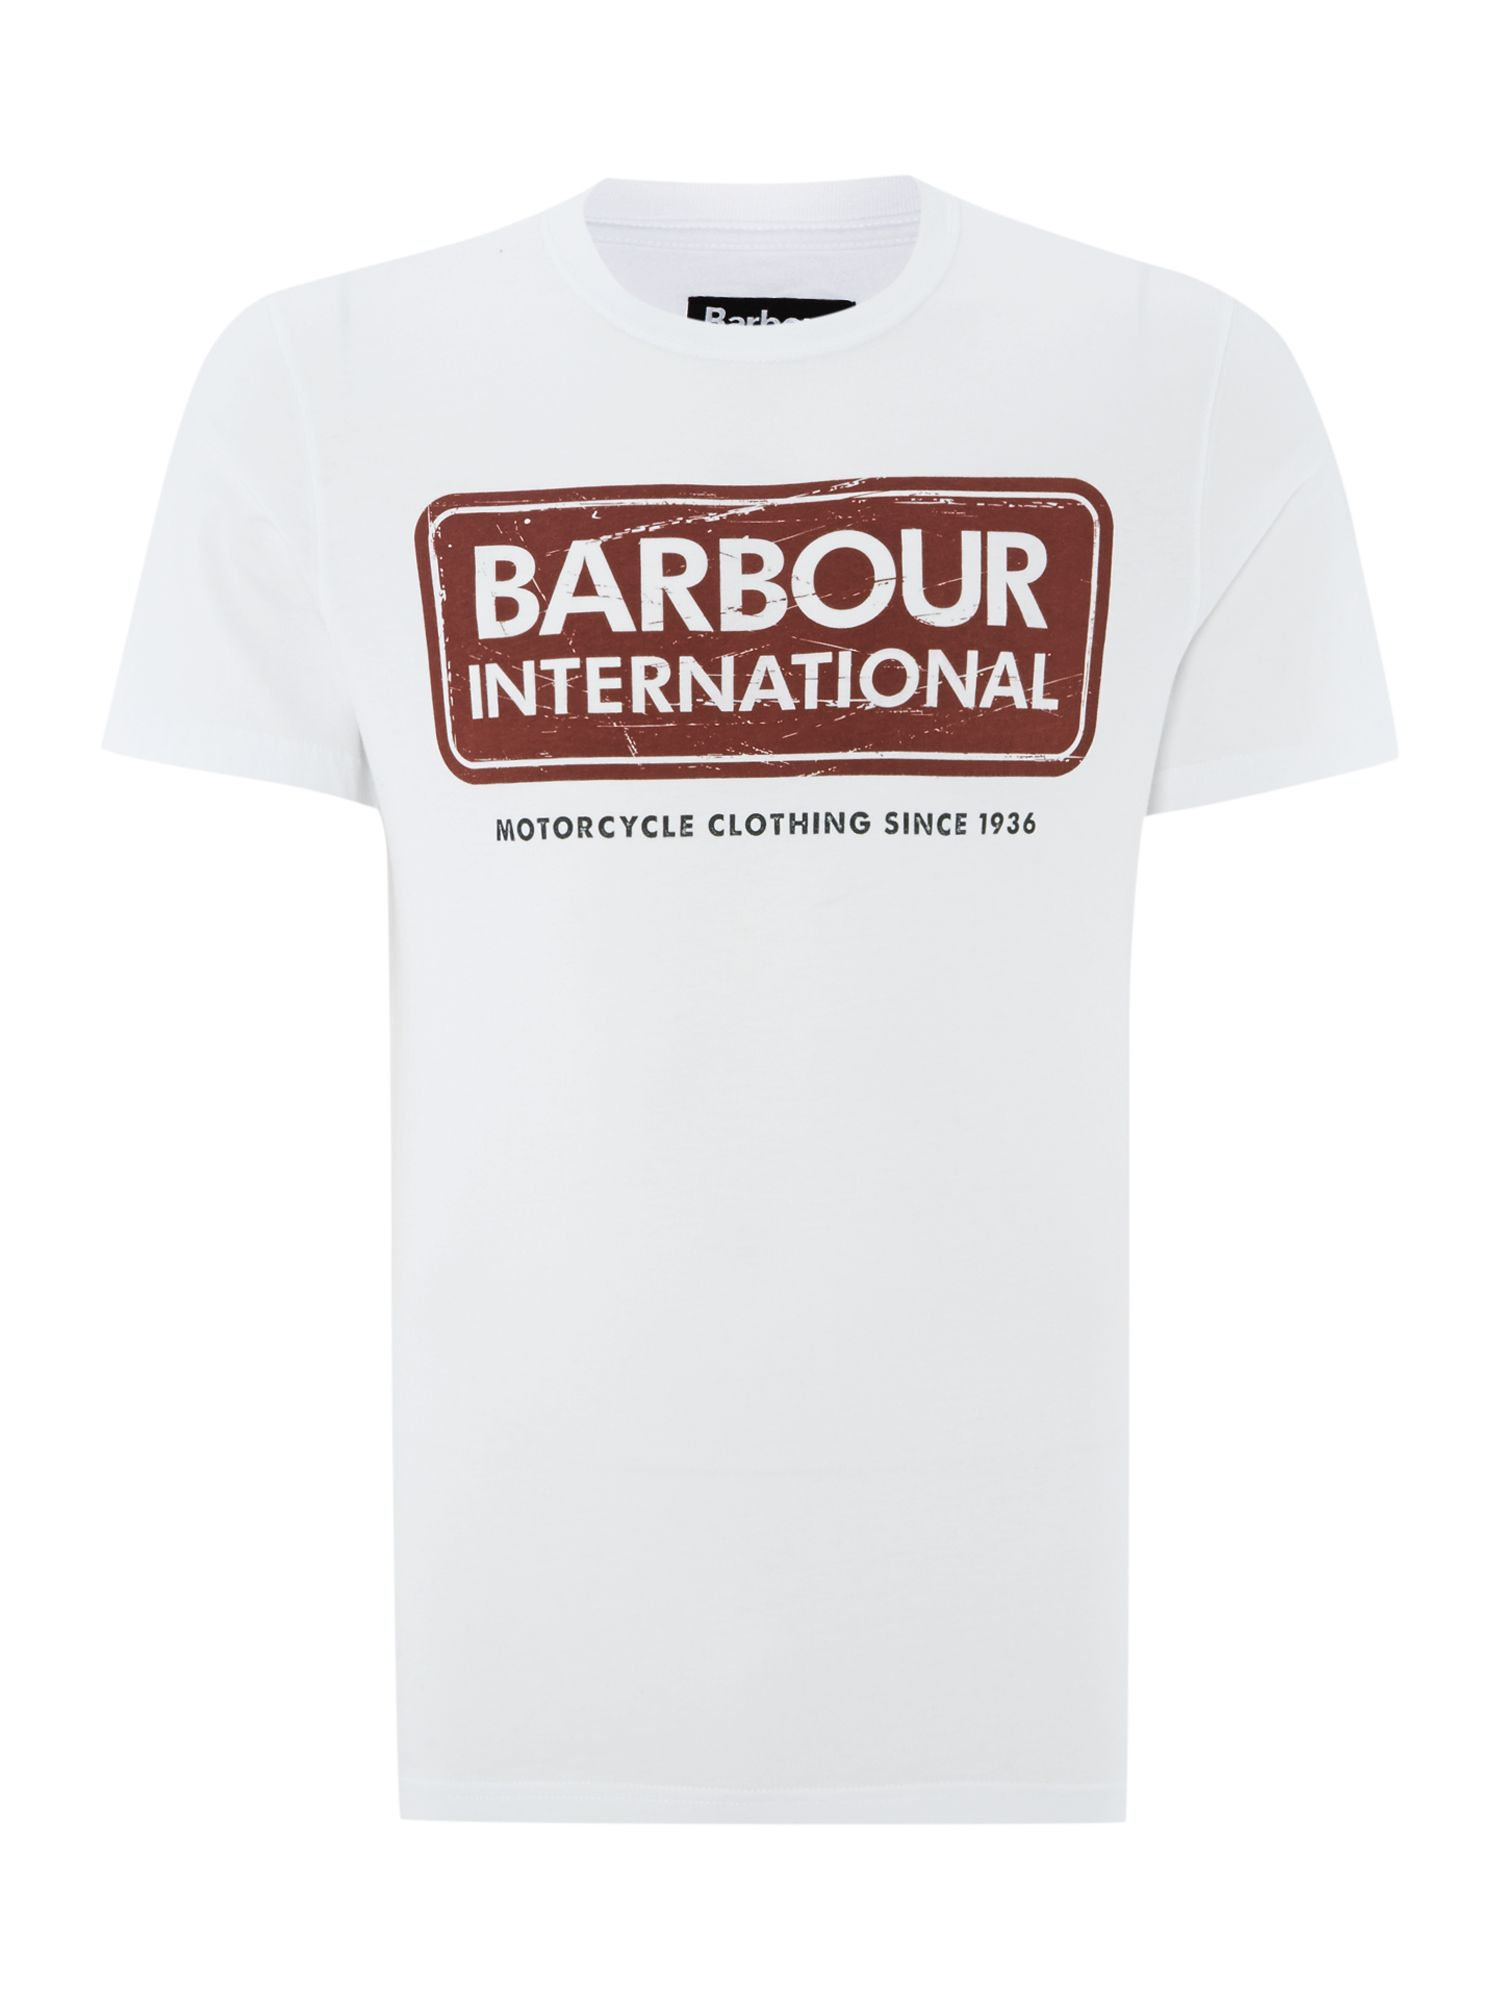 Men's Barbour International logo t-shirt, White